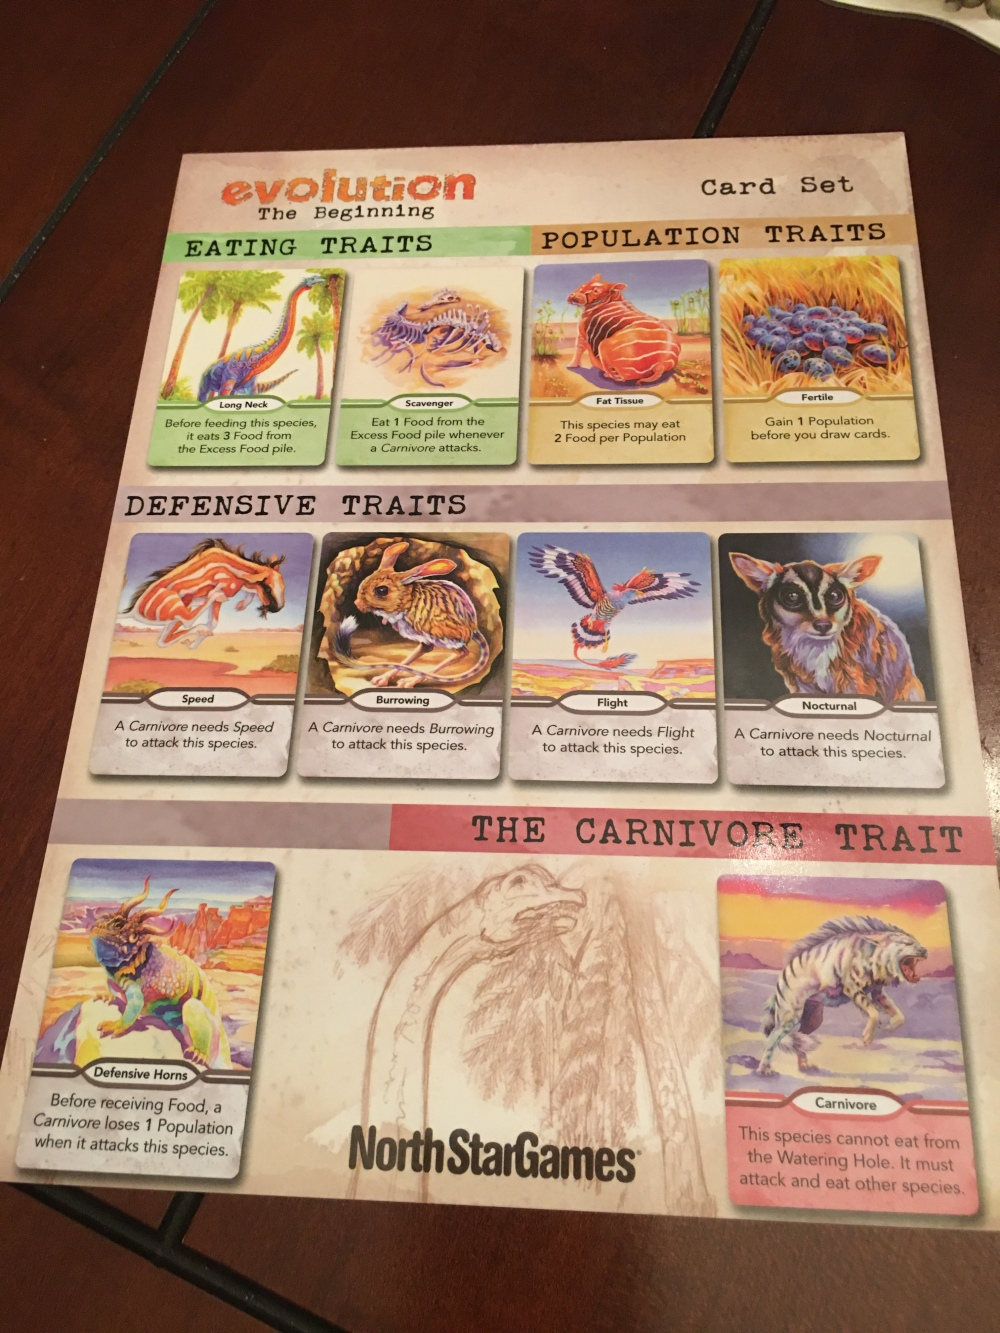 A picture of the guide card showing each of the trait types.